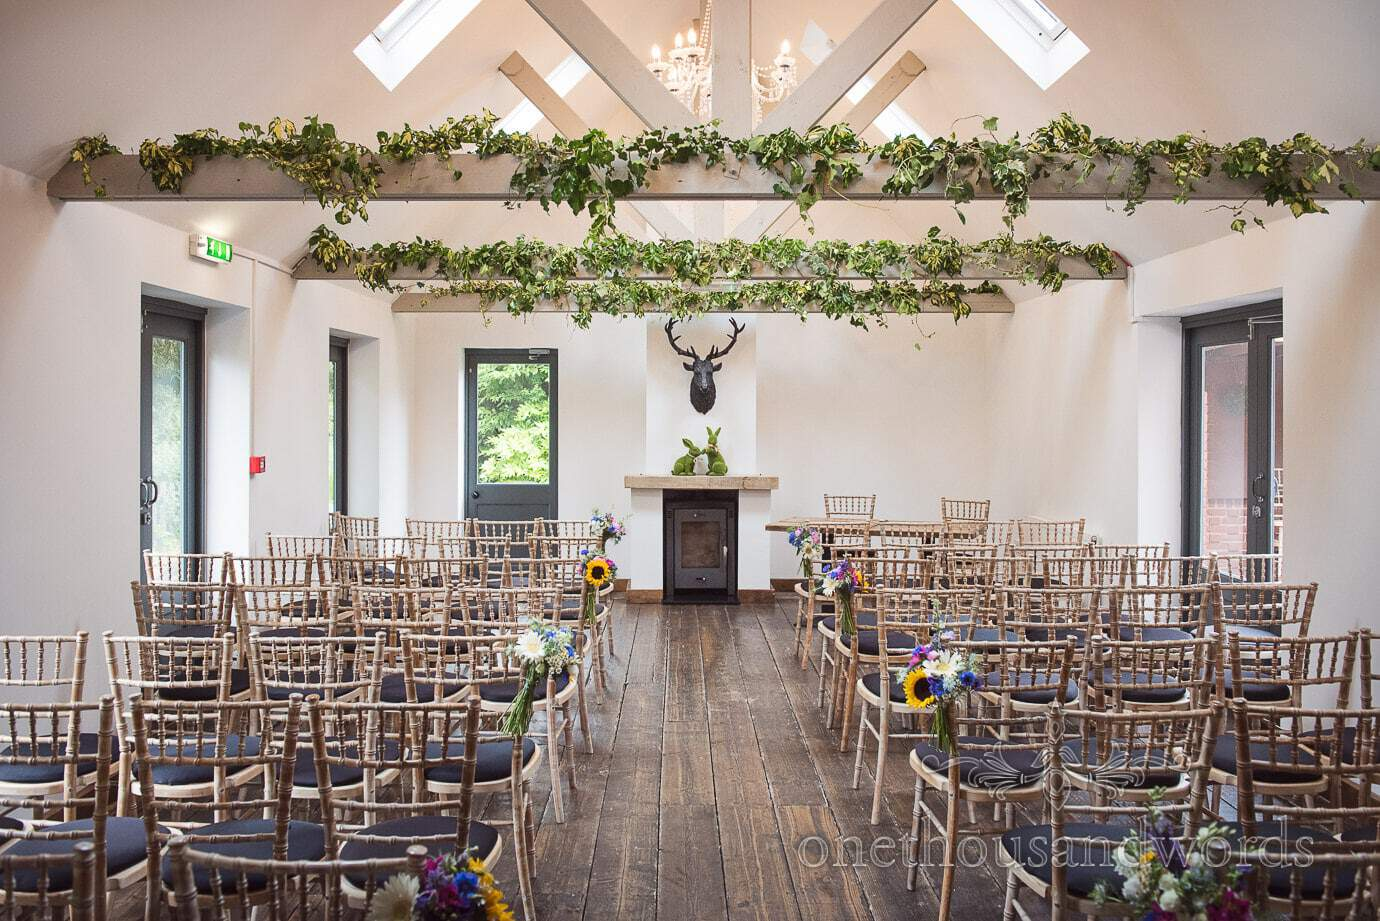 The Old Vicarage Wedding ceremony set up in The Orangery with sunflowers and ivy